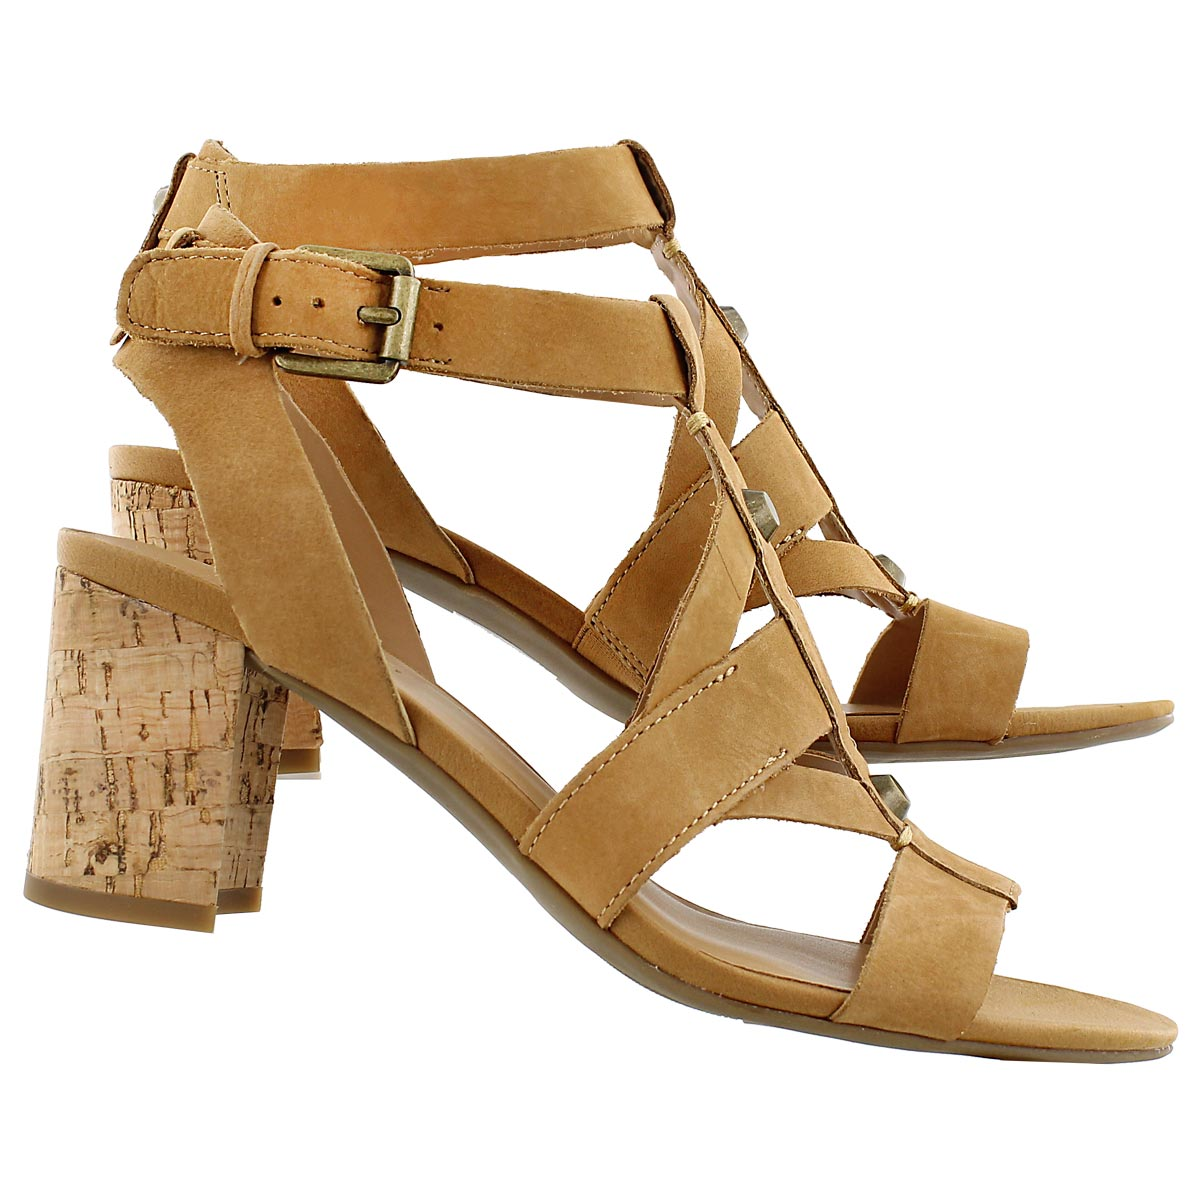 Lds Paloma biscuit dress sandal